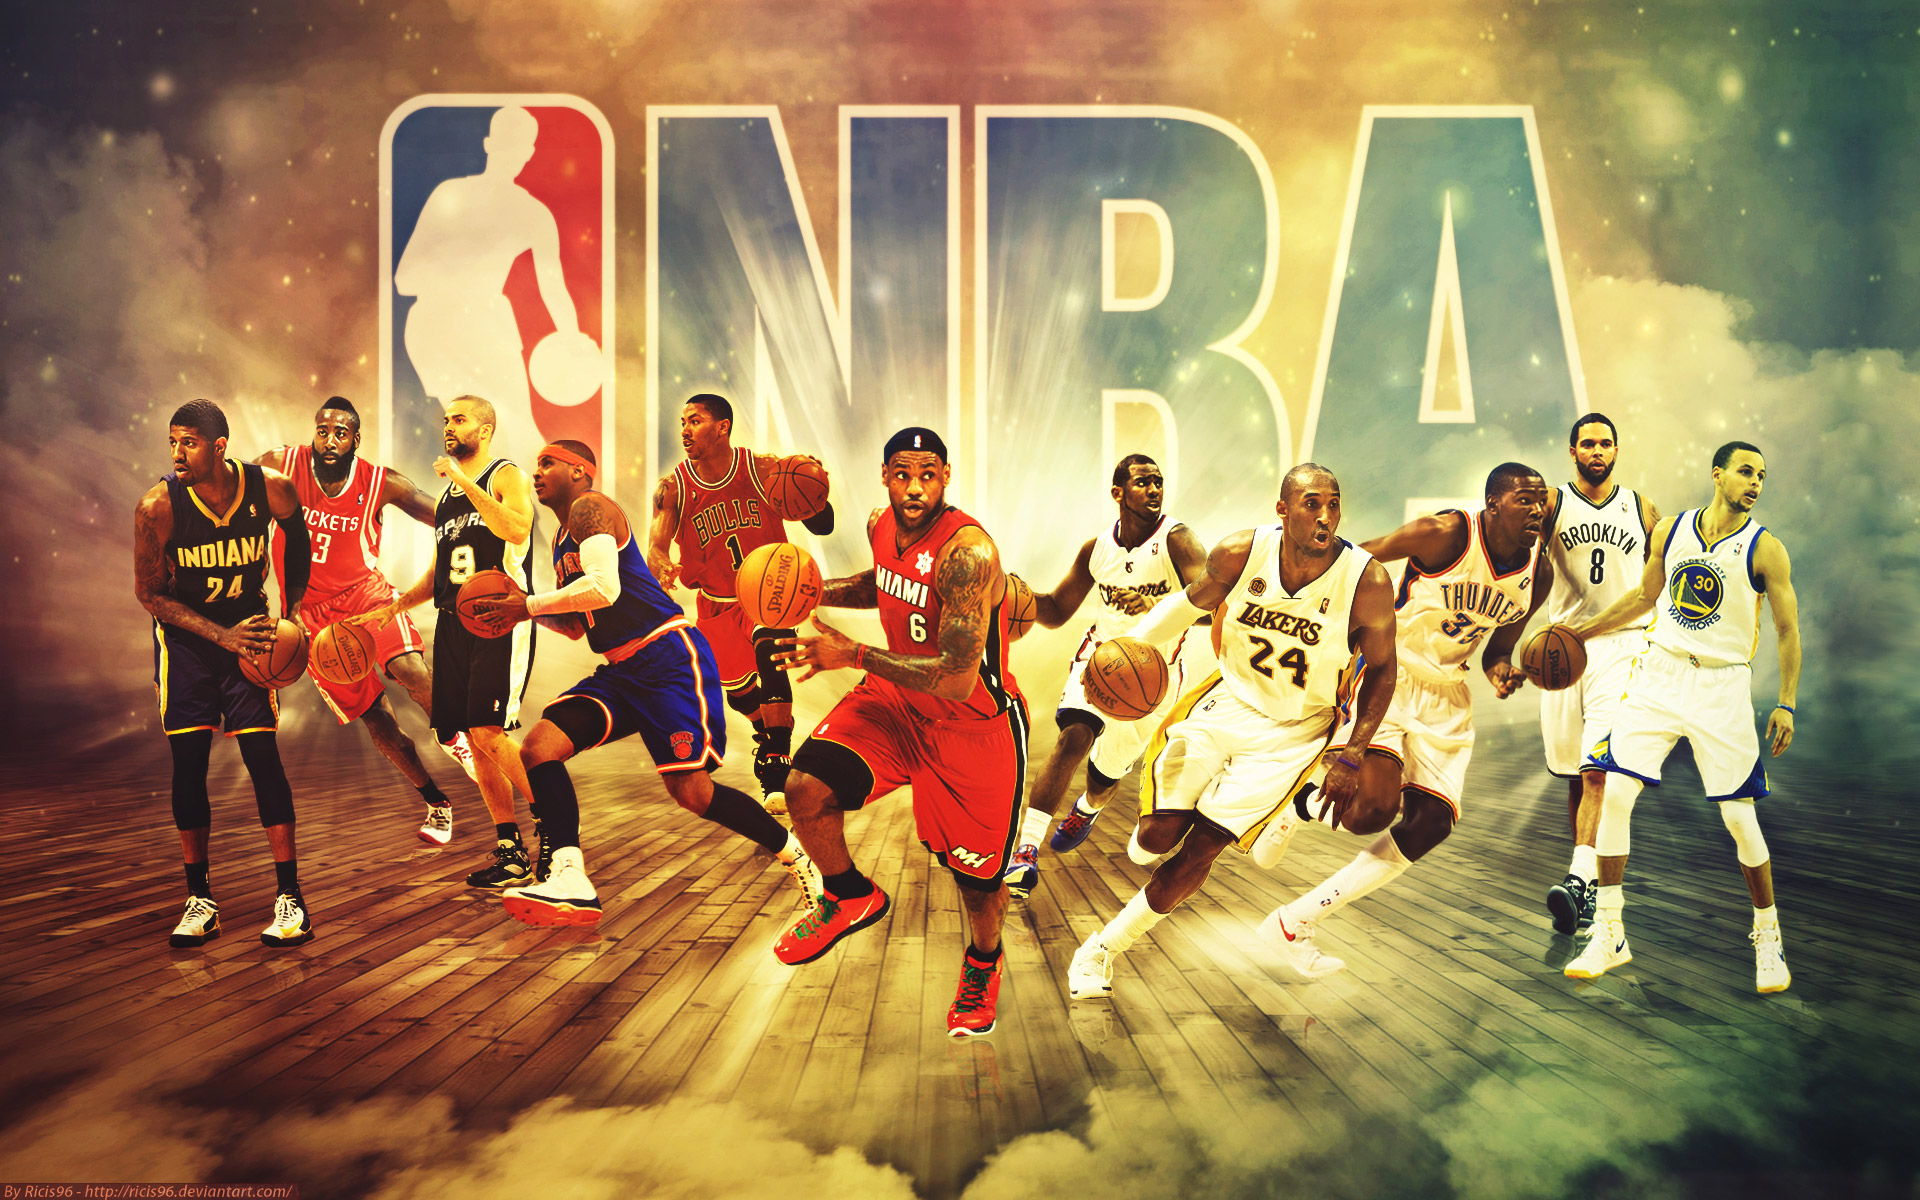 nba stars nba team wallpaper share this cool nba basketball team 1920x1200